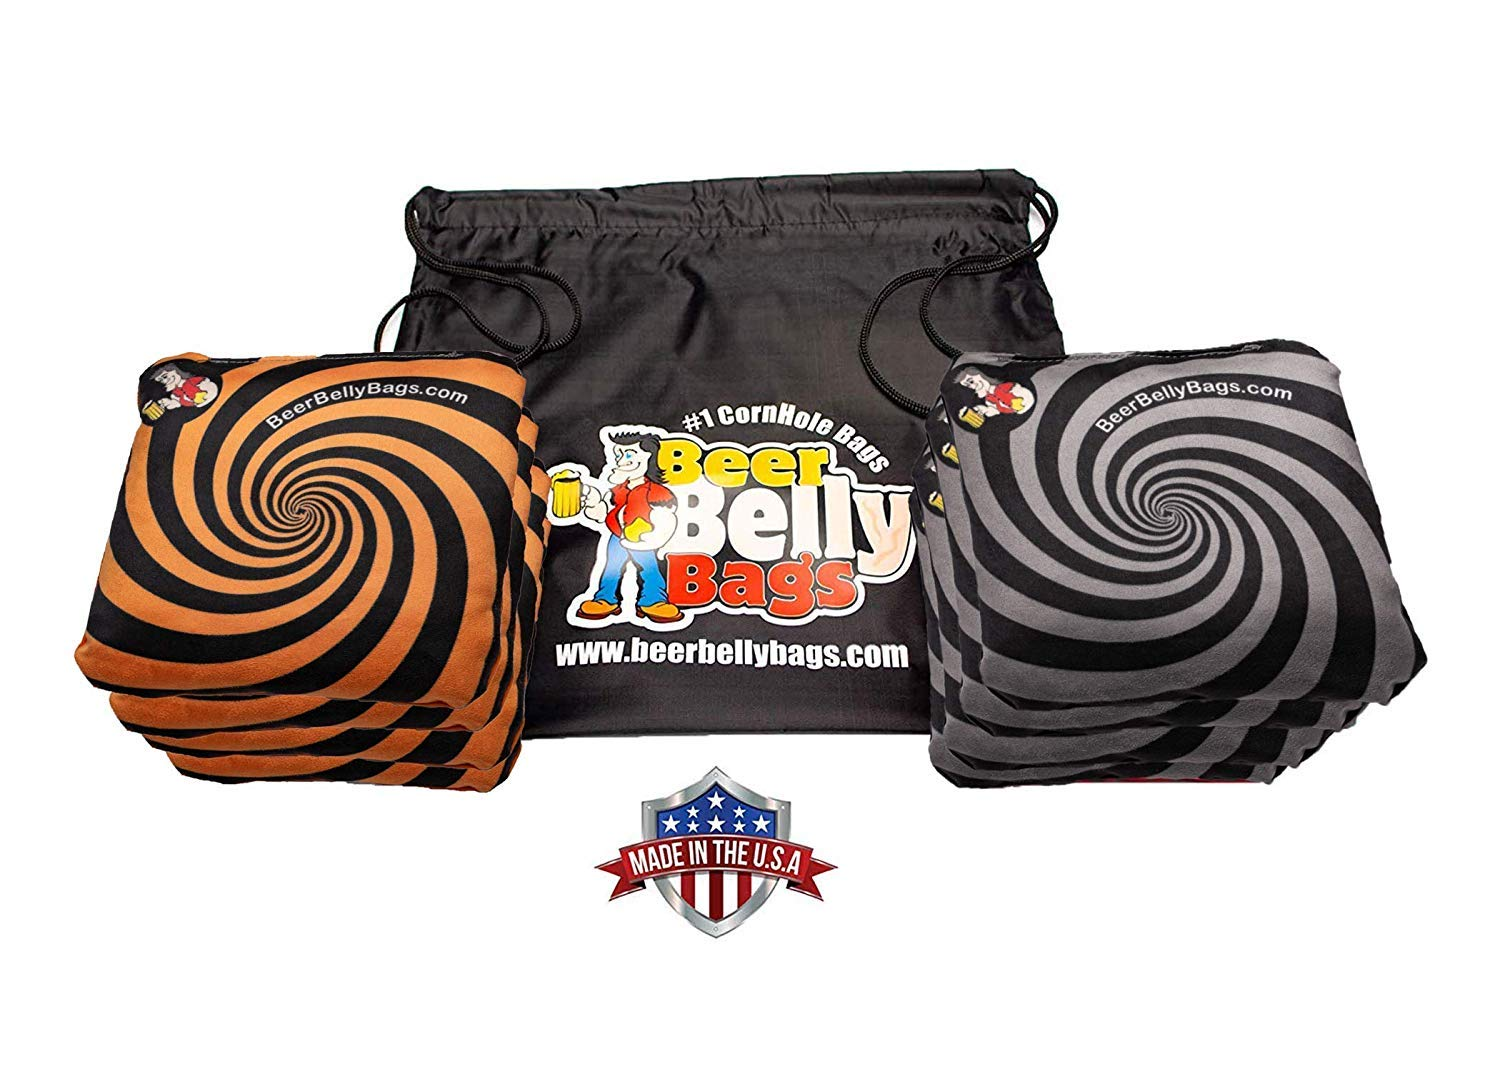 Beer Belly Bags Cornhole - Performance Series 8 Bags ACL Approved Resin Filled - Double Sided - Sticky Side | Slick Side (Orange/Black) by Beer Belly Bags